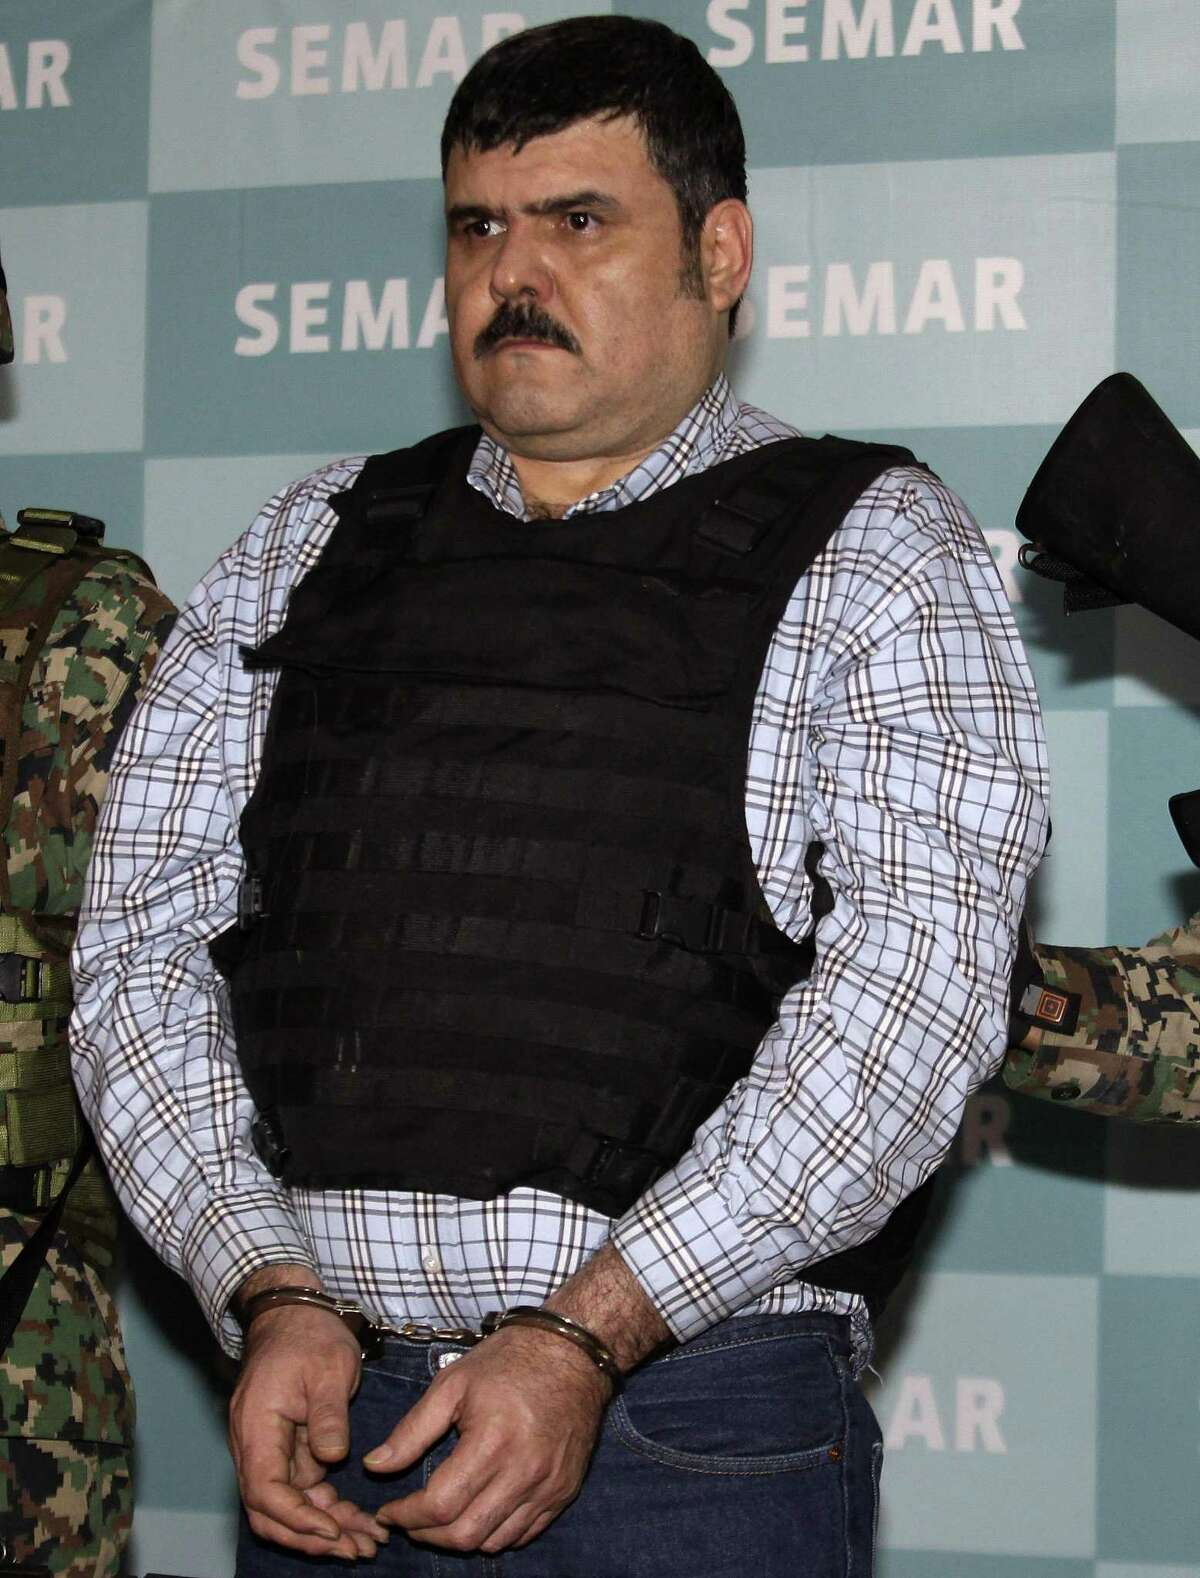 """Jorge Eduardo Costilla Sanchez, aka """"El Coss,"""" is presented to the media in Mexico City in September 2012 after his capture. Costilla has pleaded guilty to conspiracy drug charges and assault, federal authorities said Tuesday."""